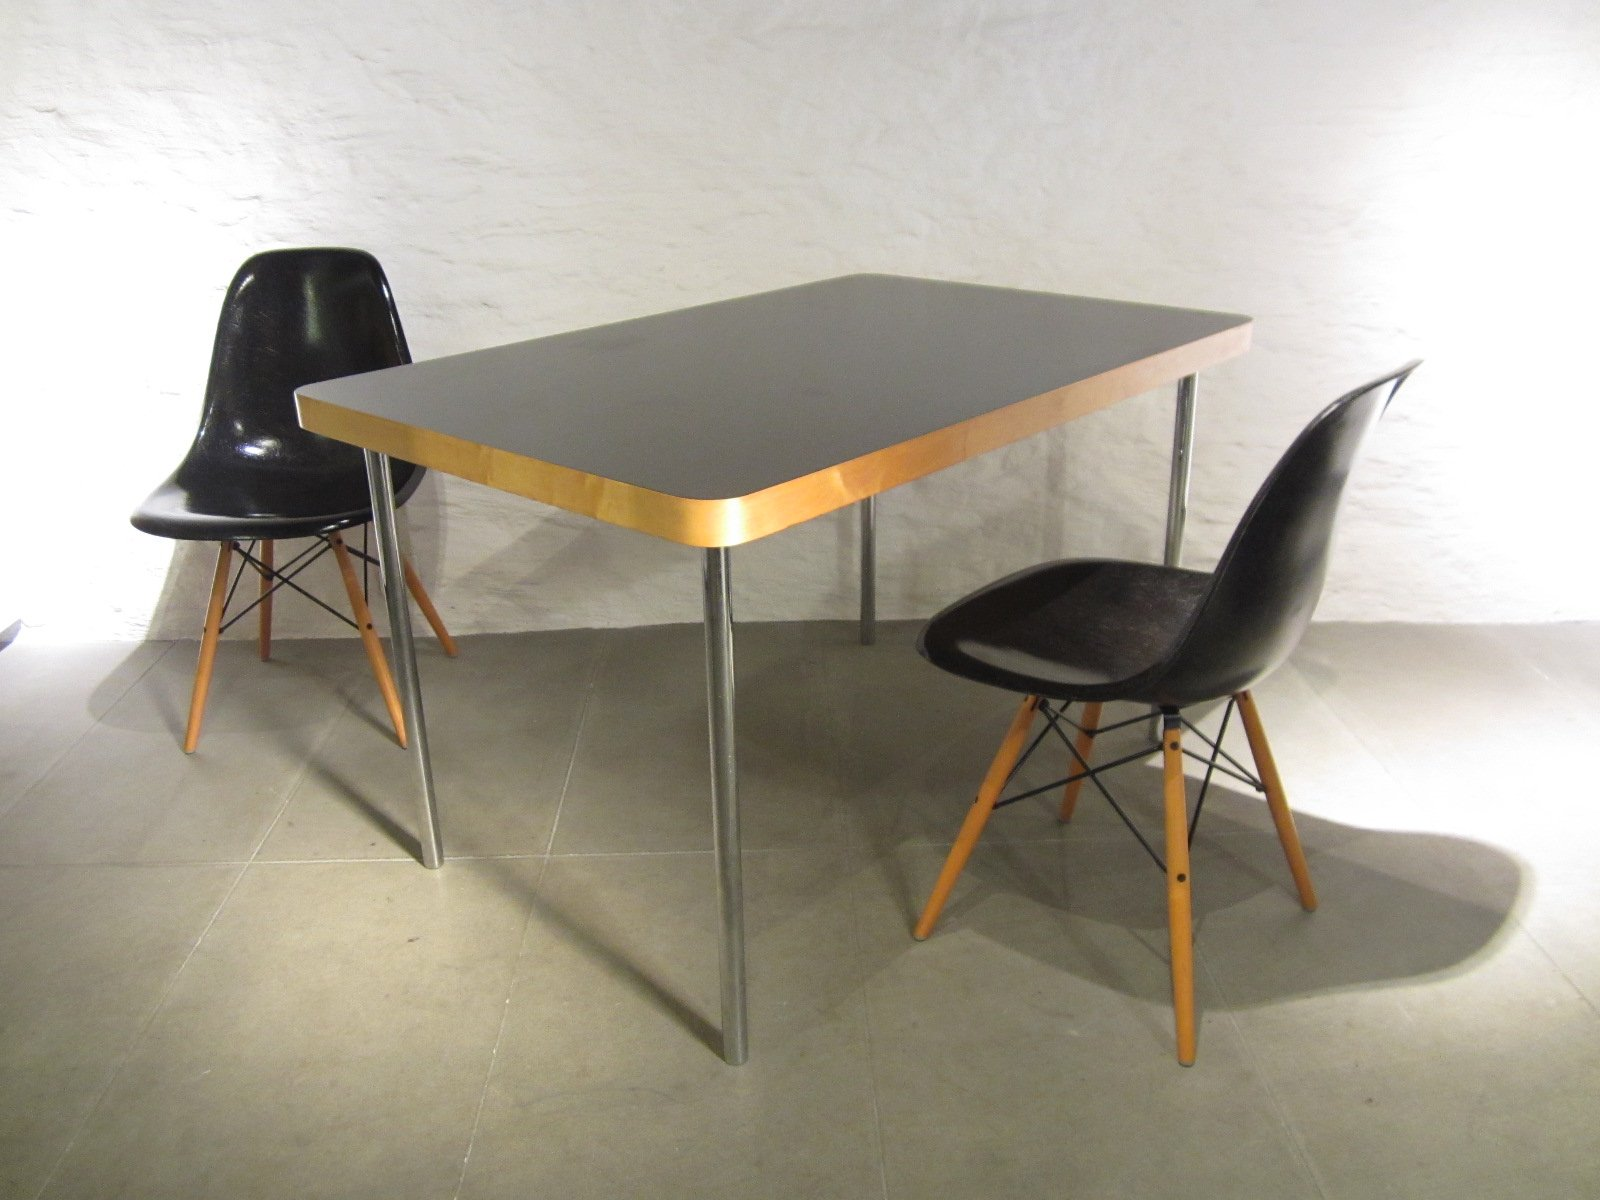 petite table de salon vintage par marcel breuer pour embru wohnbedarf 1940s en vente sur pamono. Black Bedroom Furniture Sets. Home Design Ideas